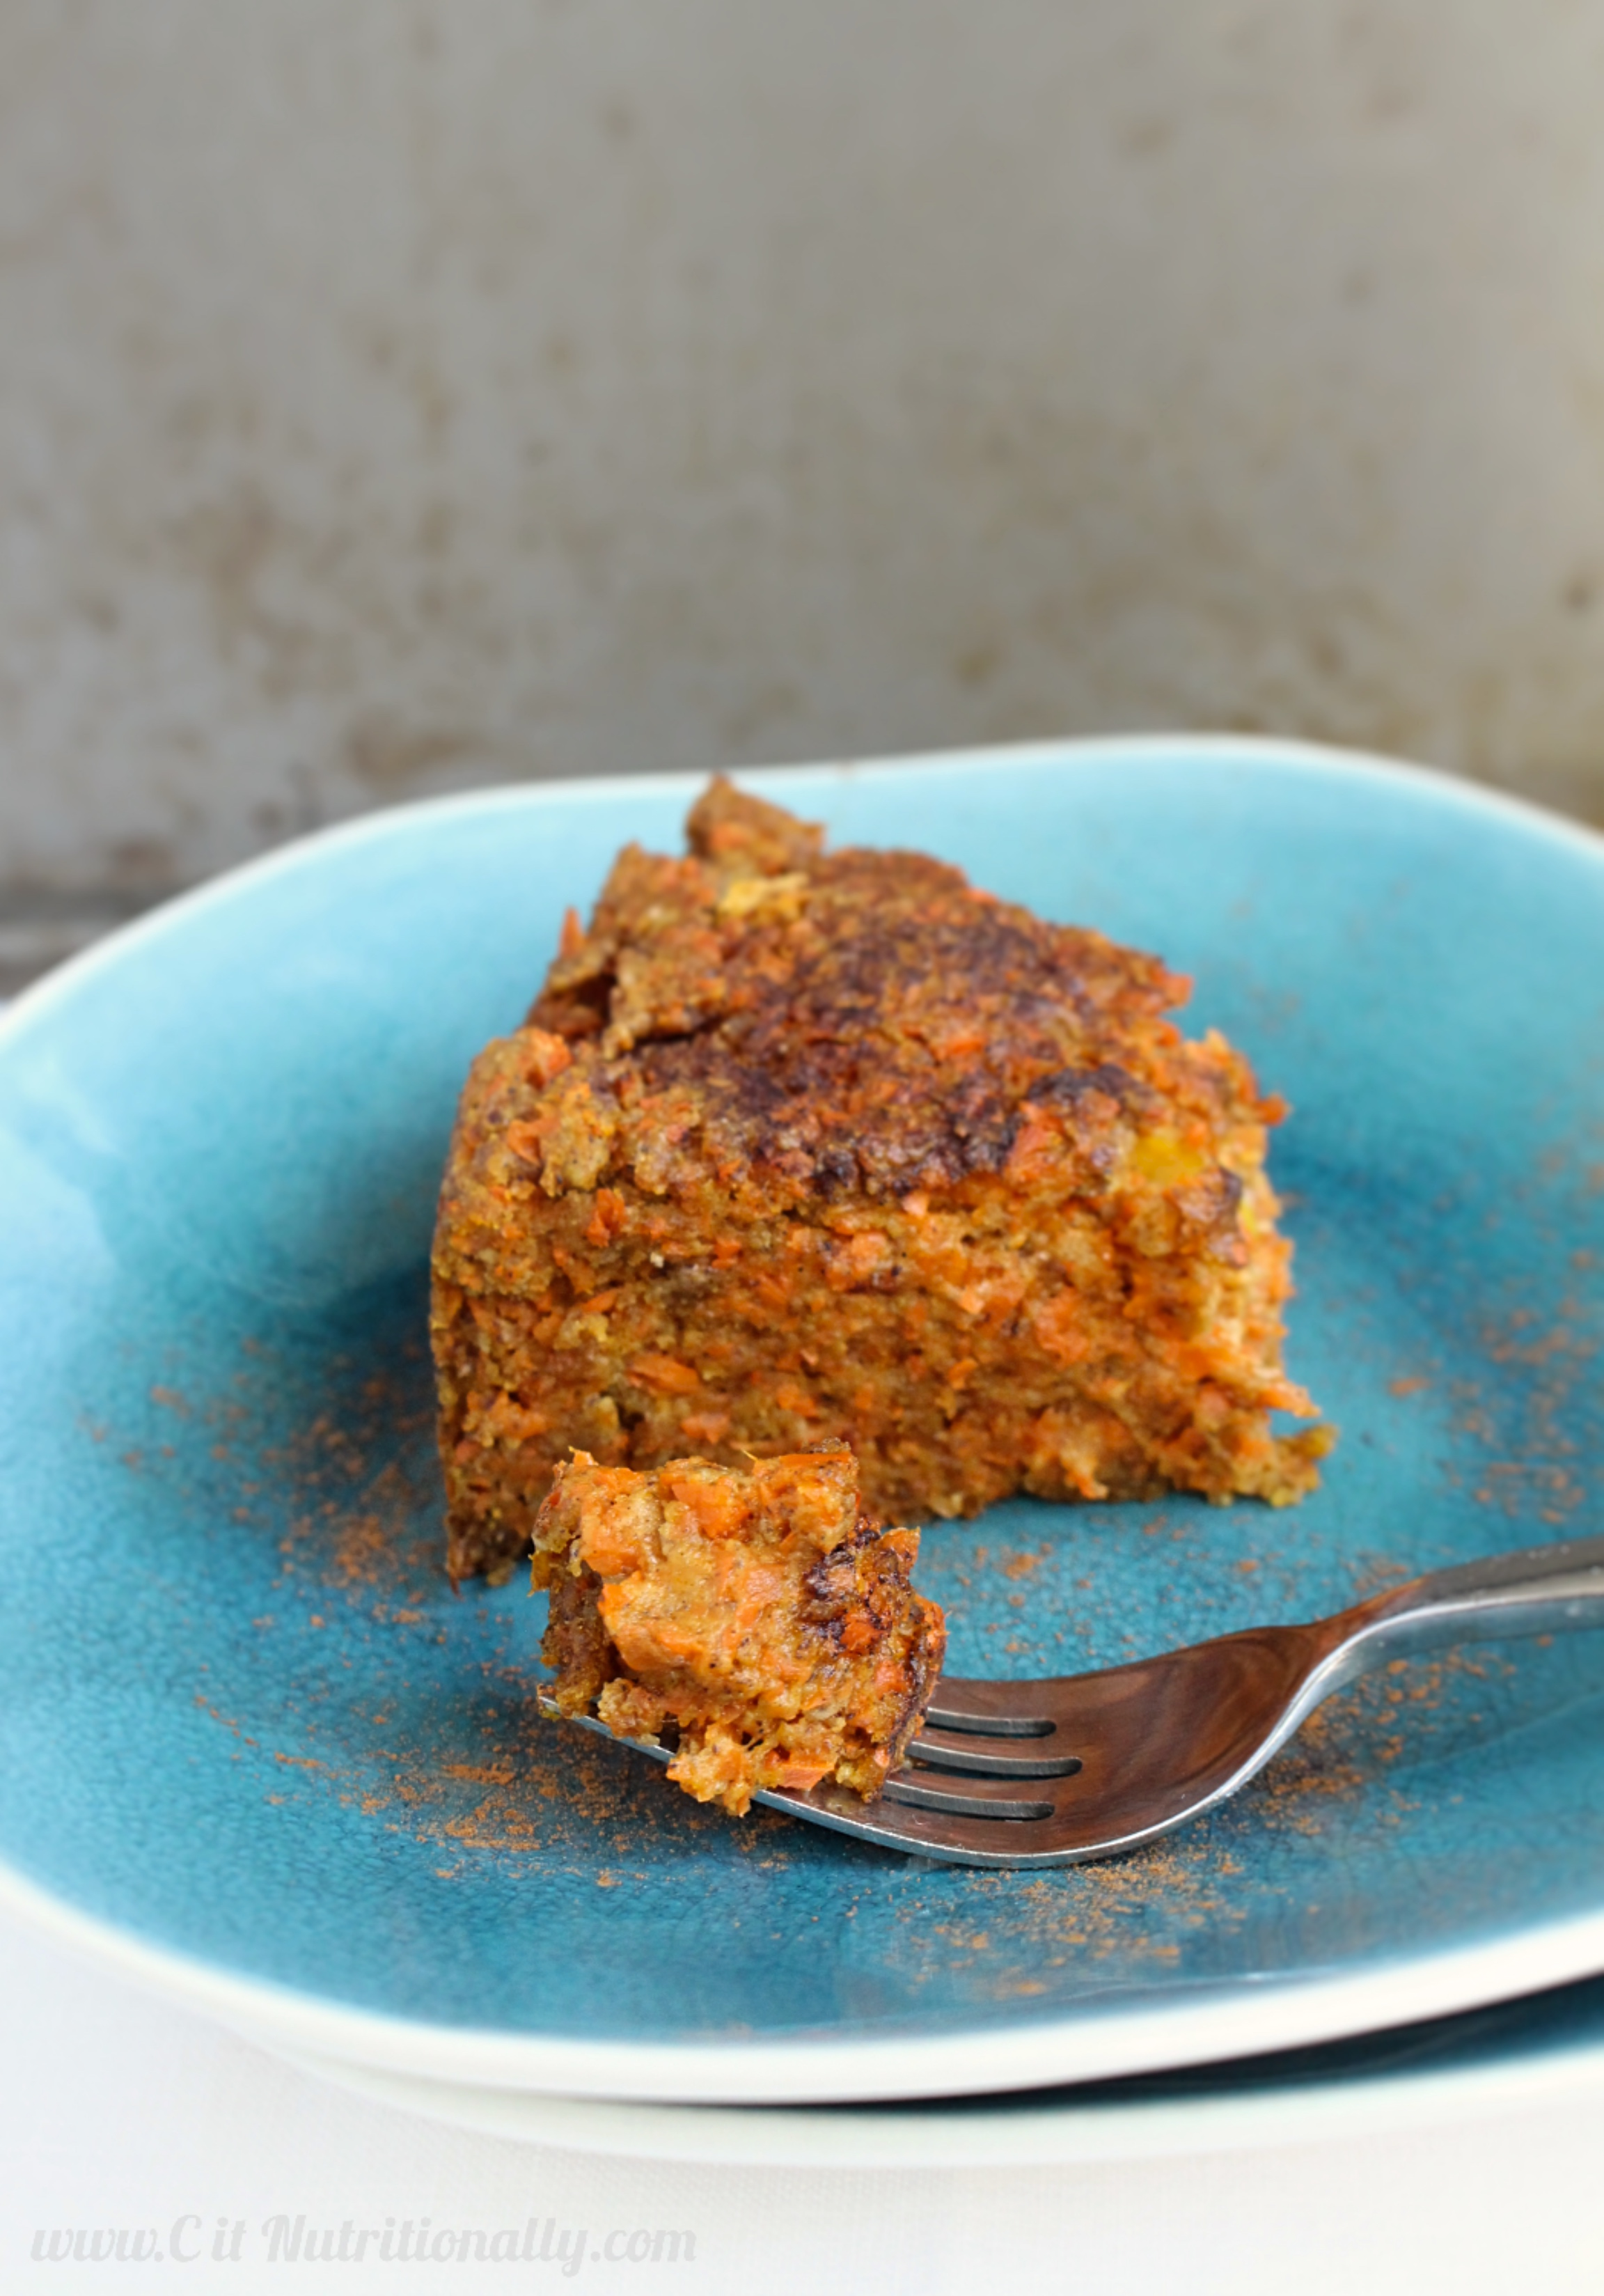 Healthier Carrot Pudding {vegan} | C it Nutritionally A great addition to your Thanksgiving table! Made with 100% whole wheat flour, sweetened with date sugar and apples, and full of delicious nutrition!